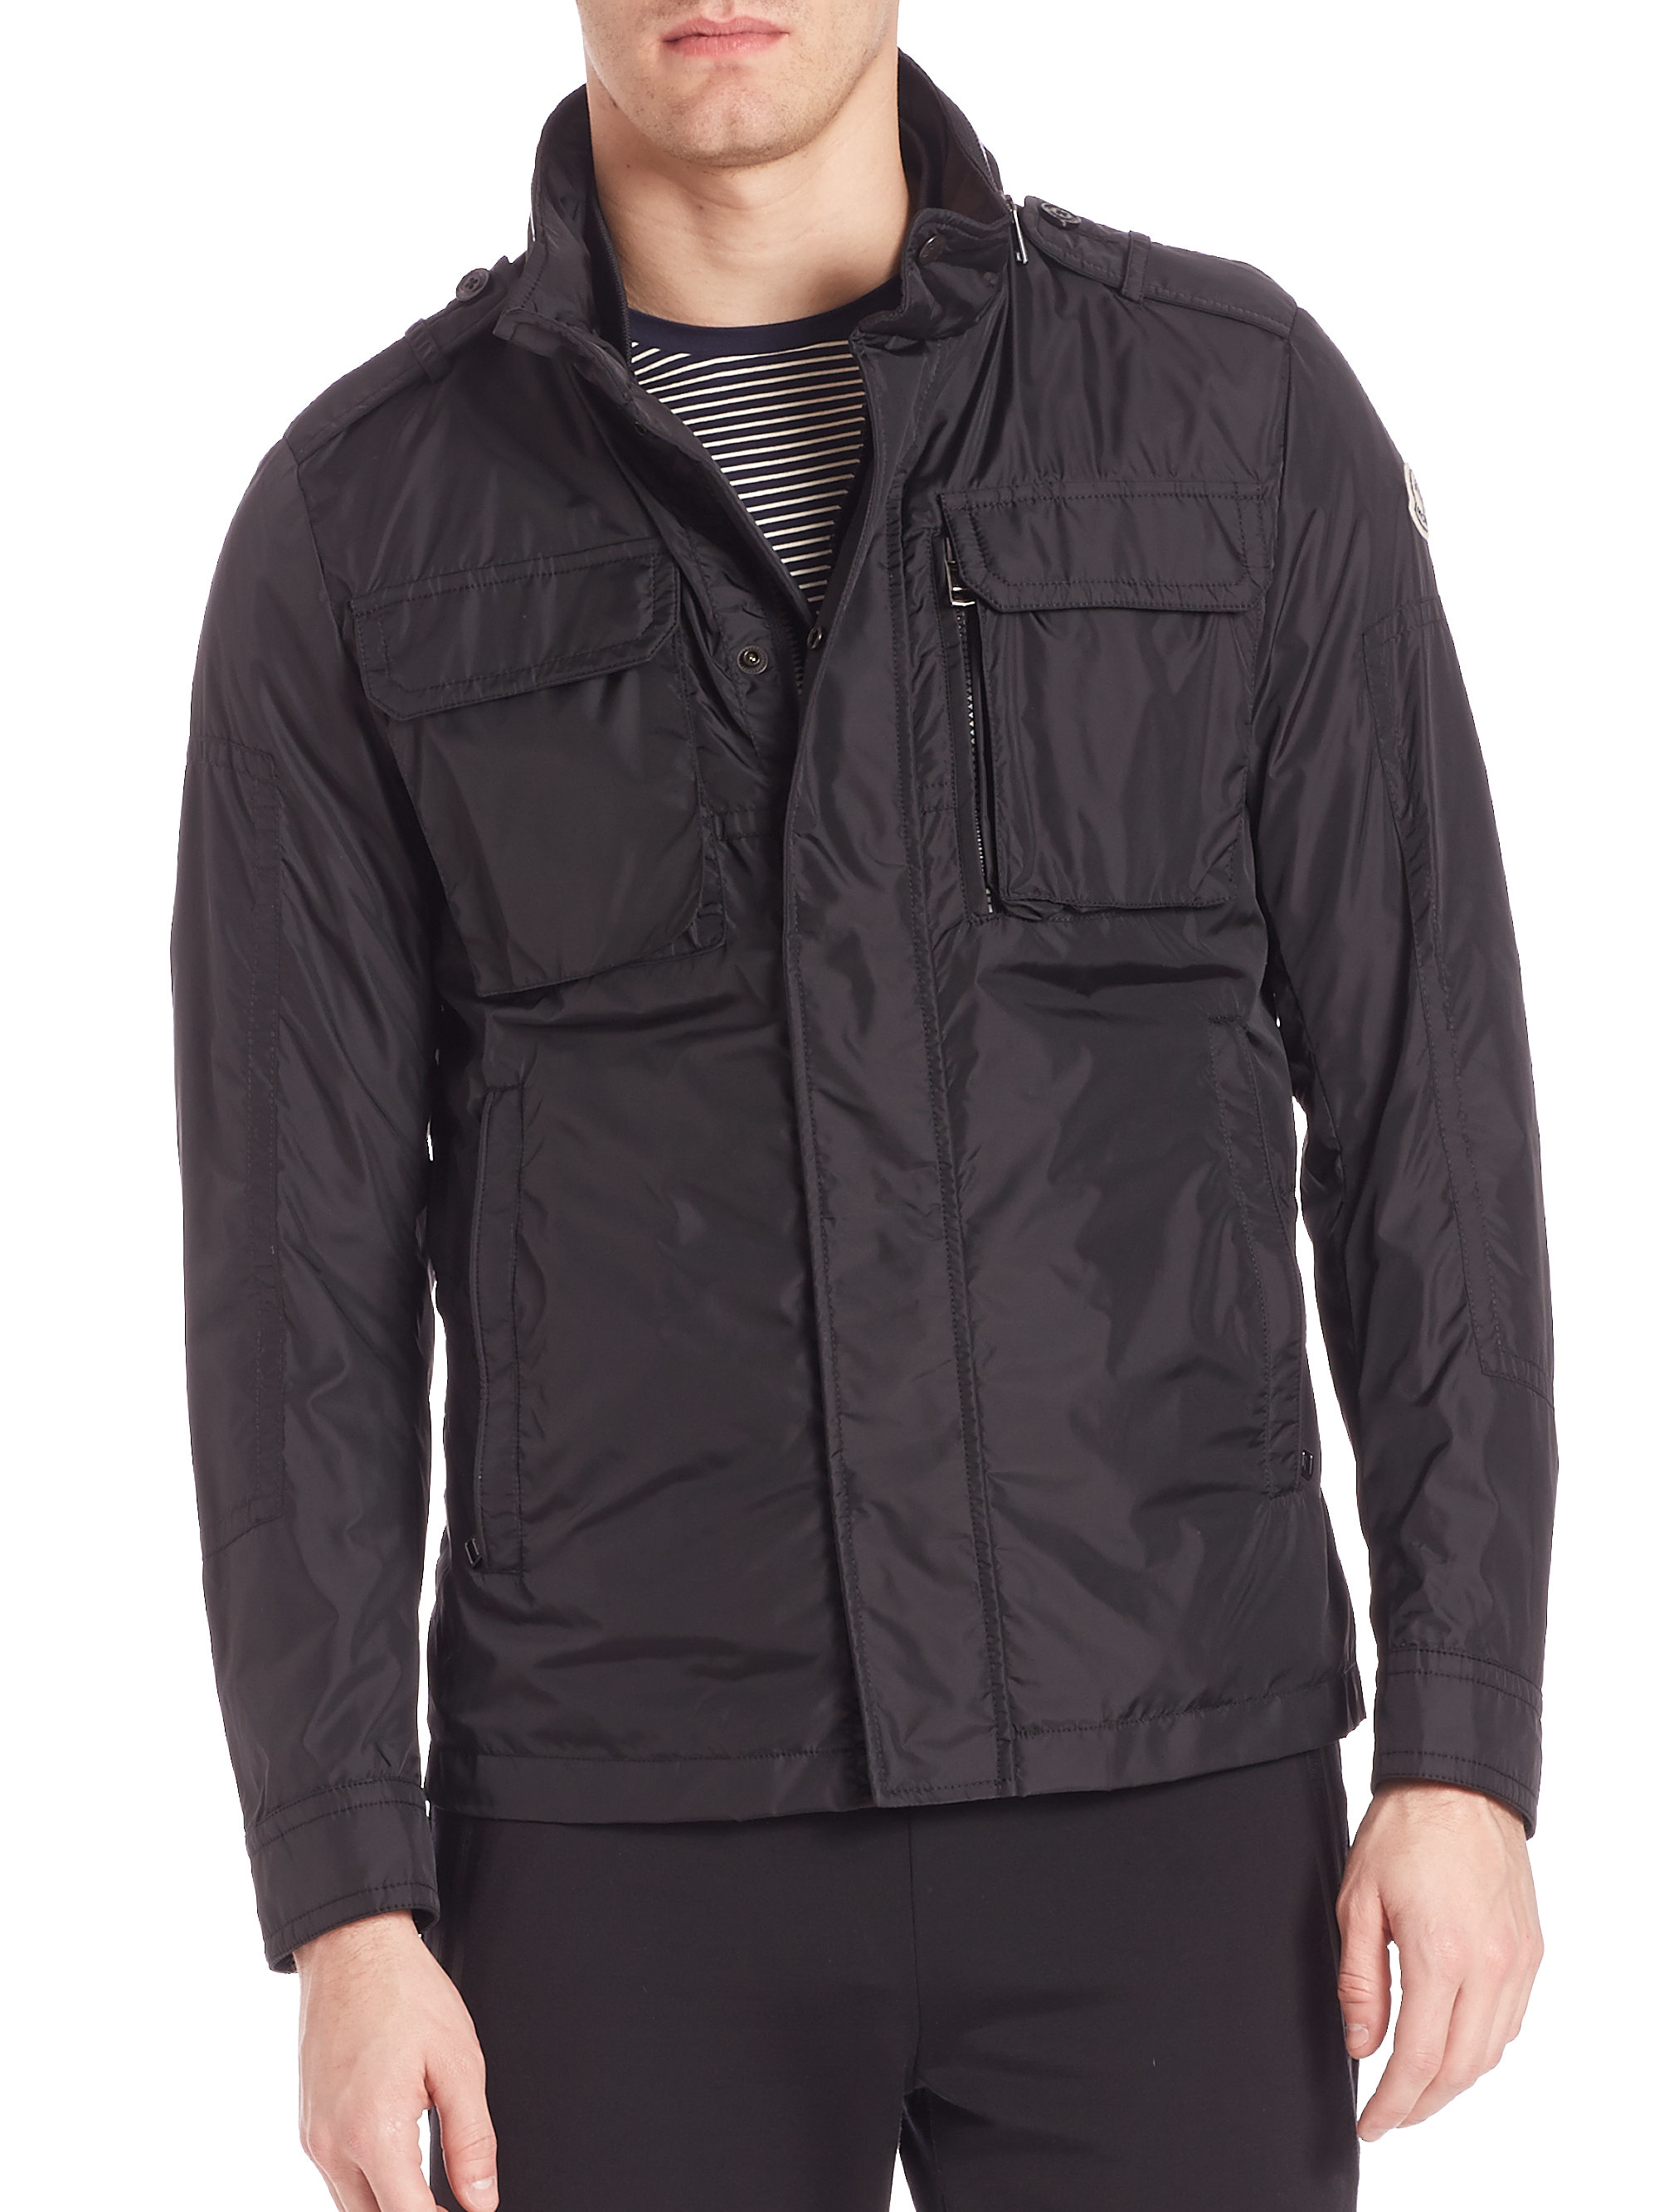 The Calvin Klein Men's Packable Down Jacket is a stylish quilted nylon with a front zipper as well as zippered side and chest pockets. It comes in classic colors such as black, blue and dark indigo and can be tucked inside its accompanying pouch.